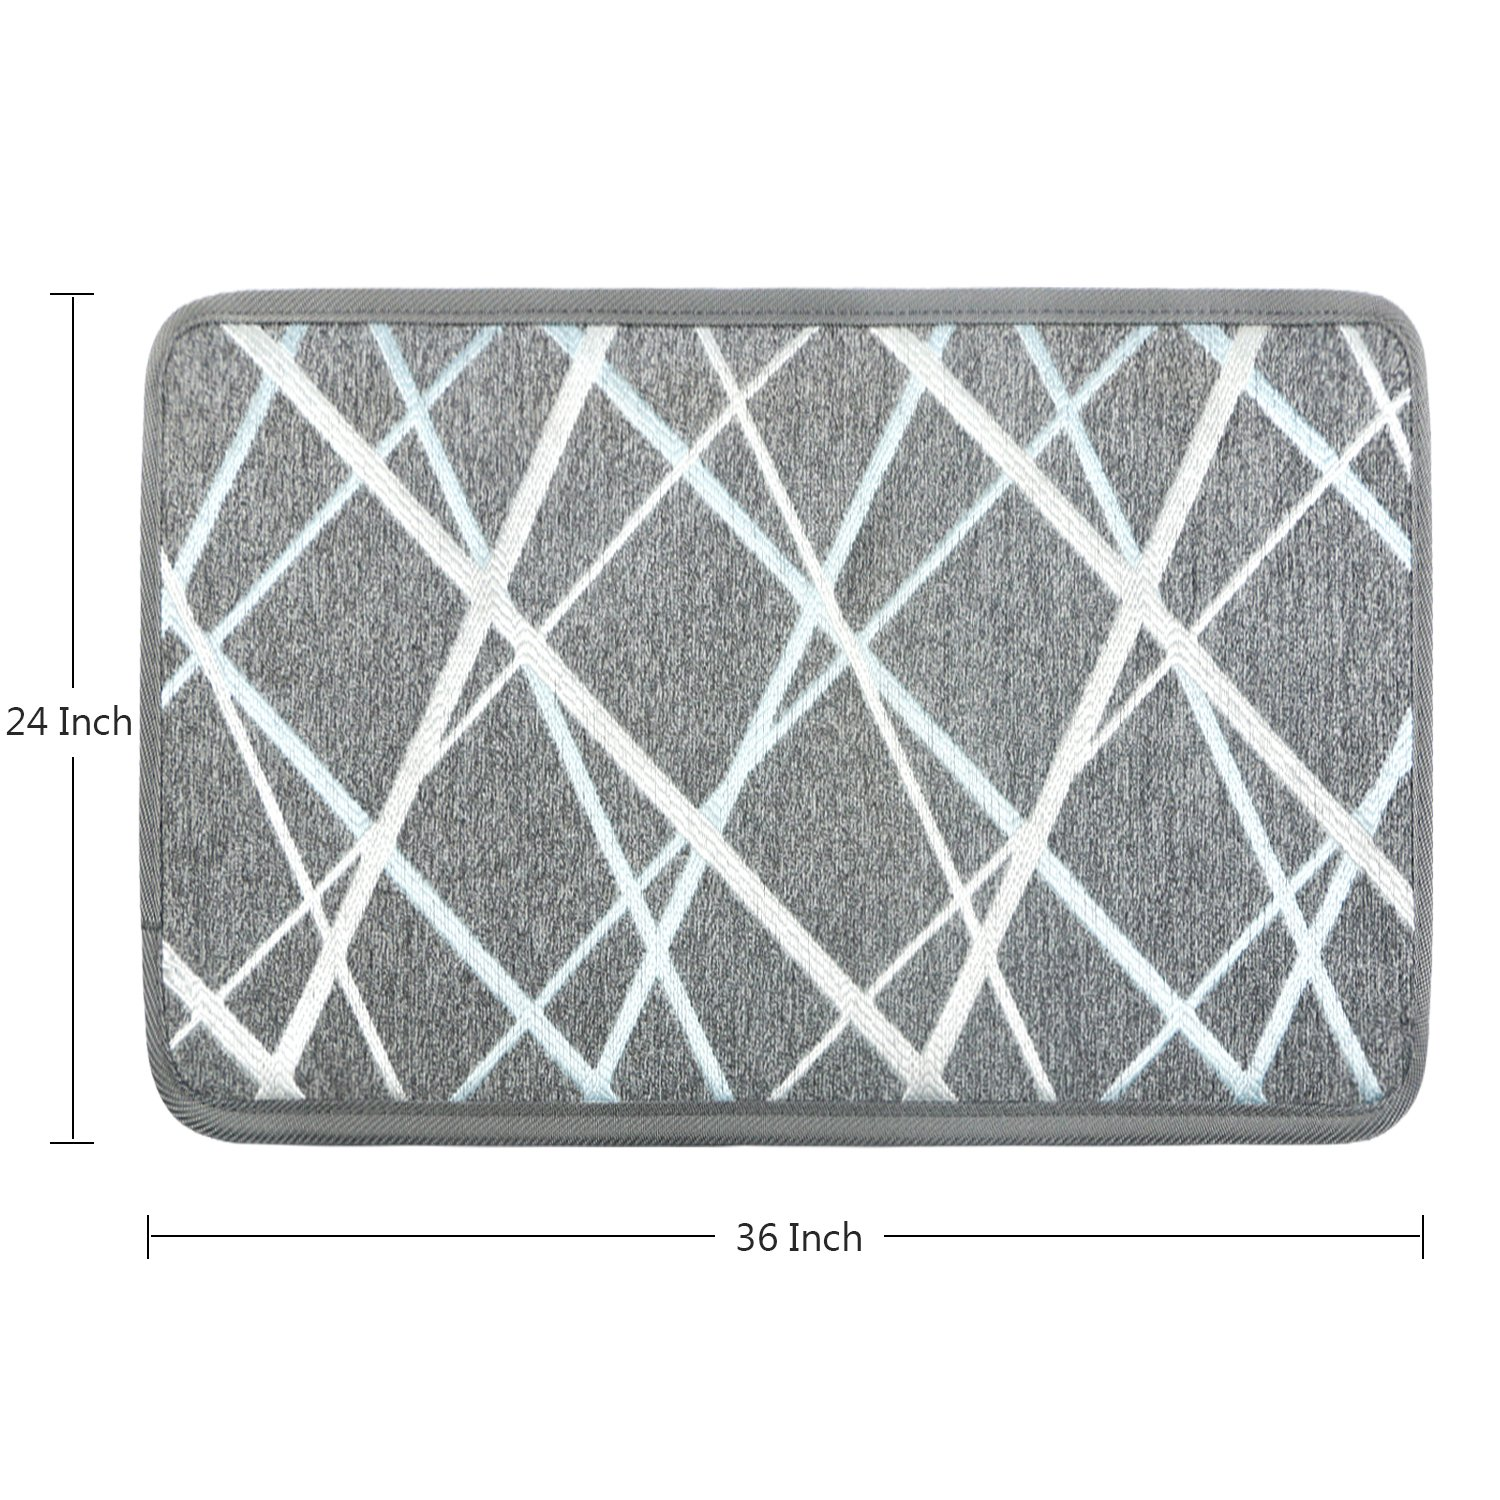 Soloom Stair Treads/Landing Mat/Floor Rugs with Non-Slip Rubber Backing, Perfect for Door Entrance, Grey 24×36 Inch